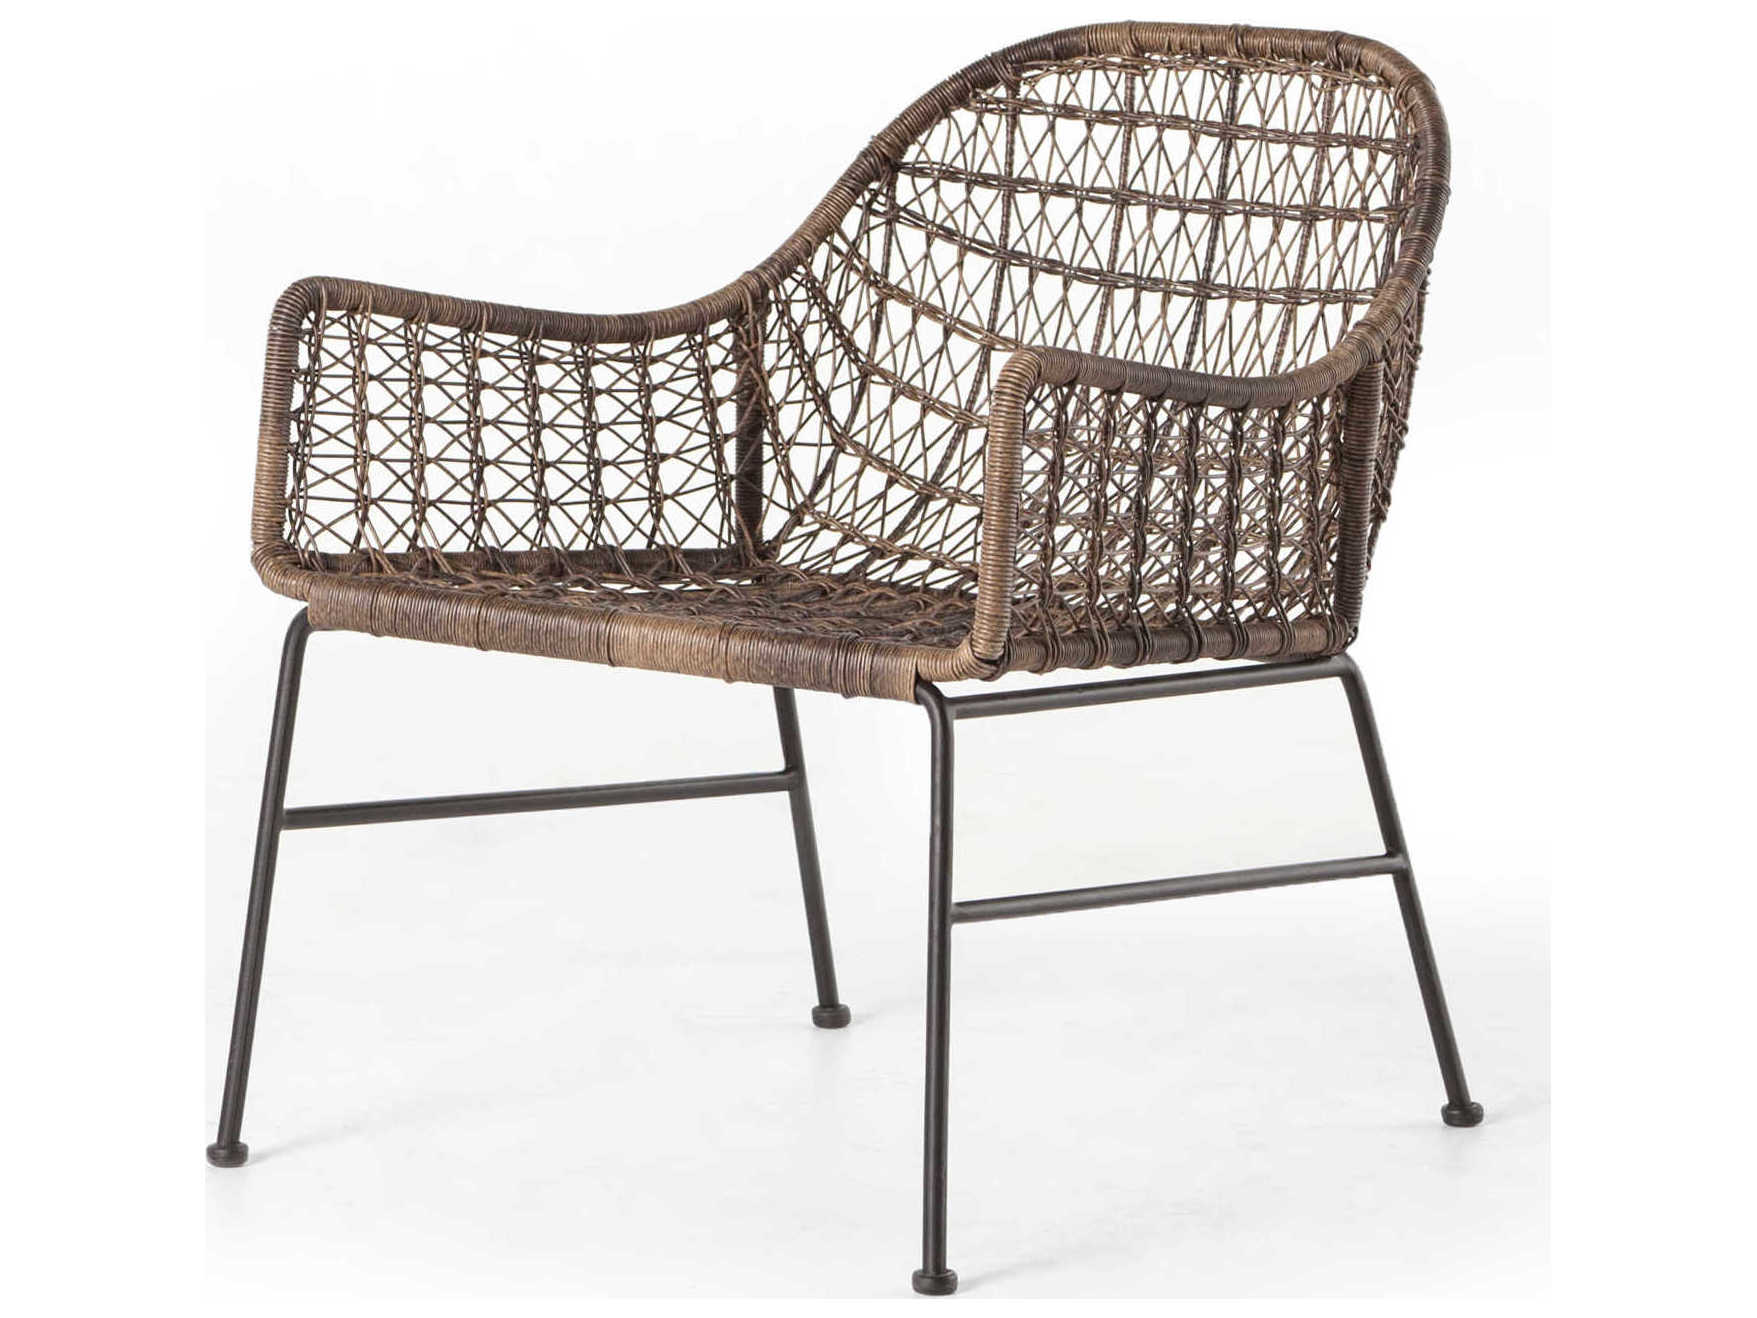 Four Hands Outdoor Grass Roots Natural Black Distressed Grey Wrought Iron Wicker Lounge Chair Fhojlan138